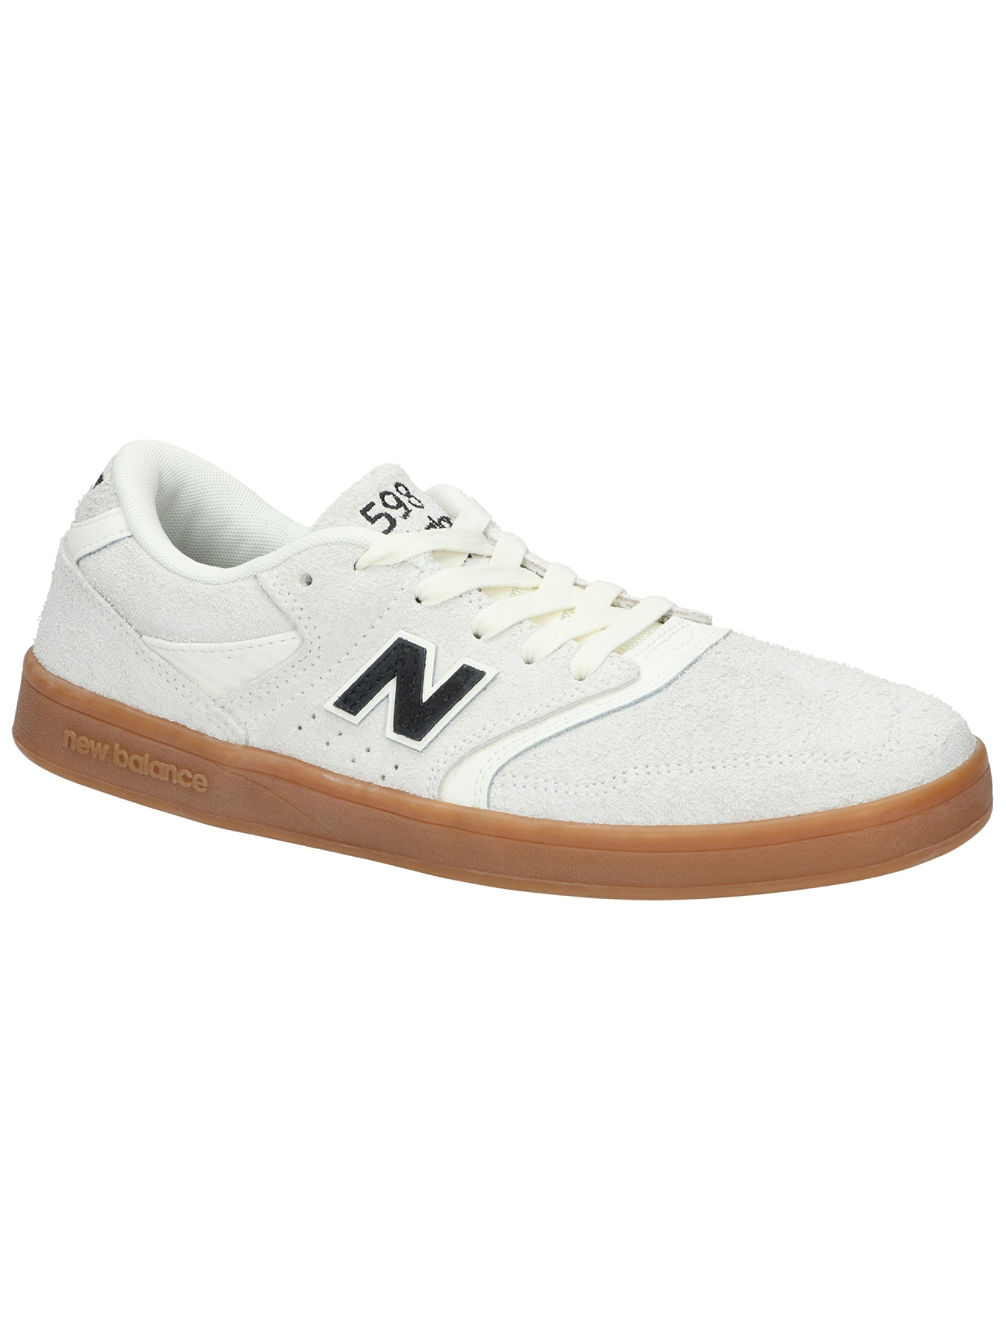 598 Numeric Skate Shoes